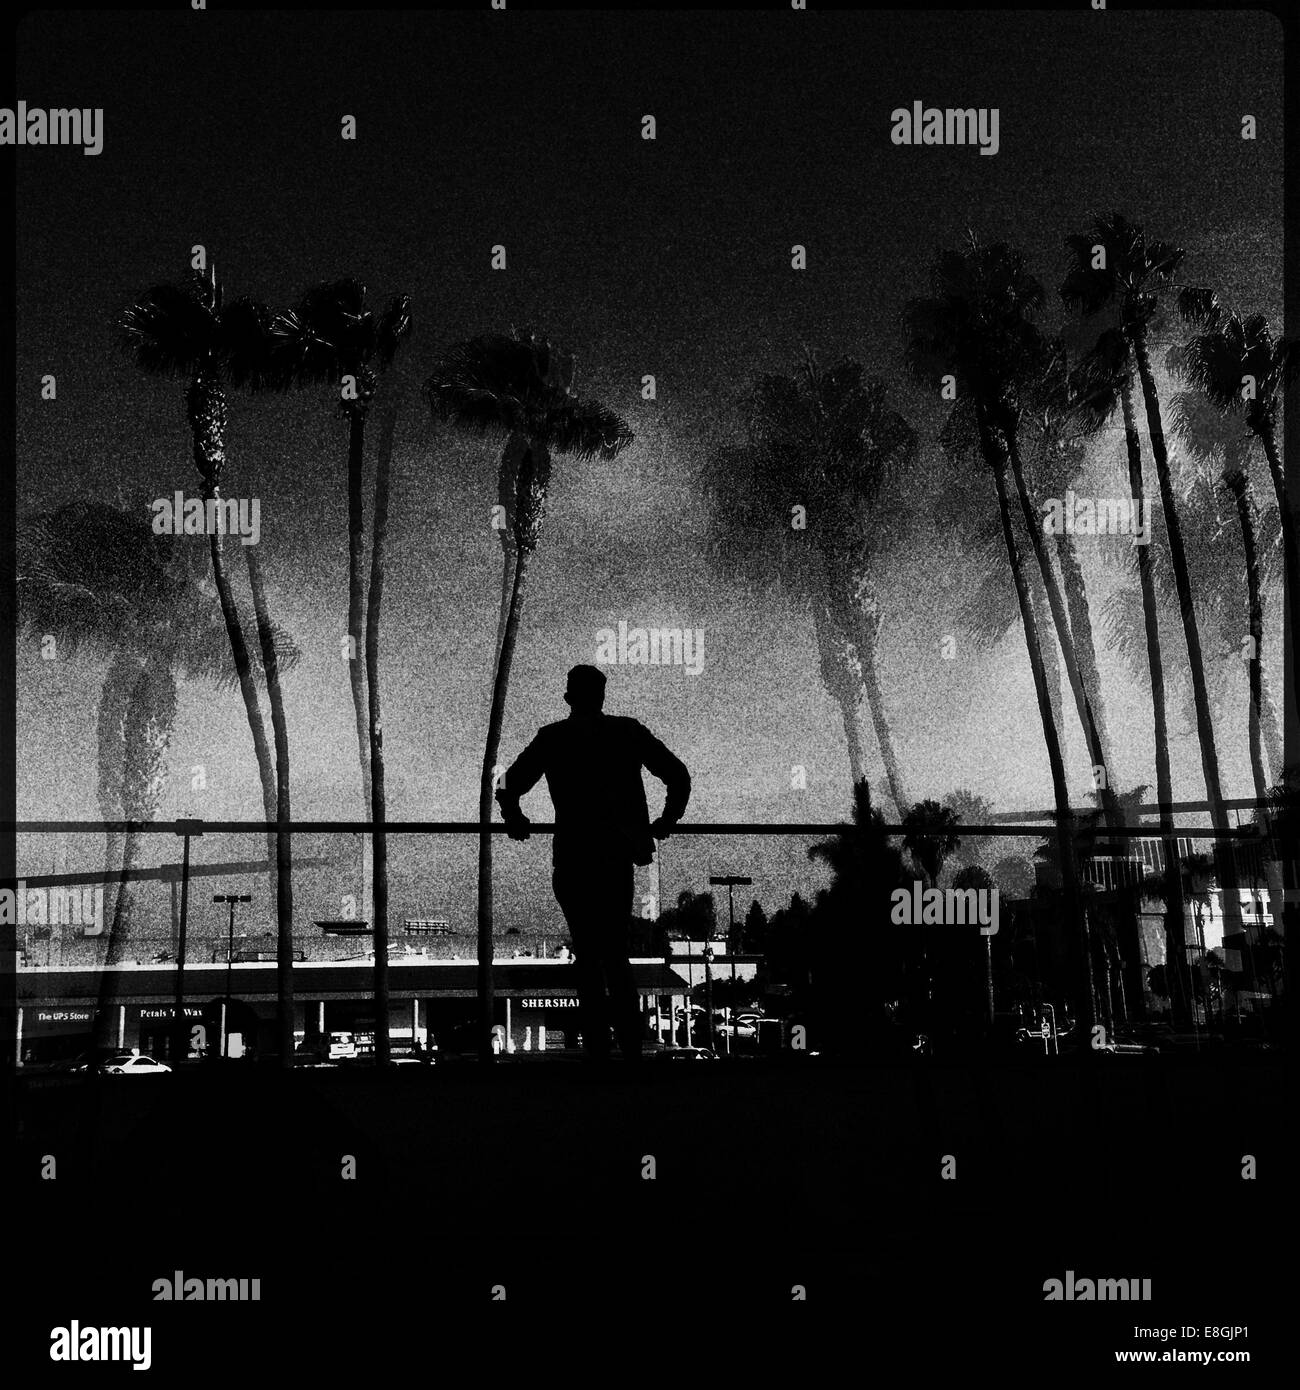 Silhouette of a man looking over balcony - Stock Image